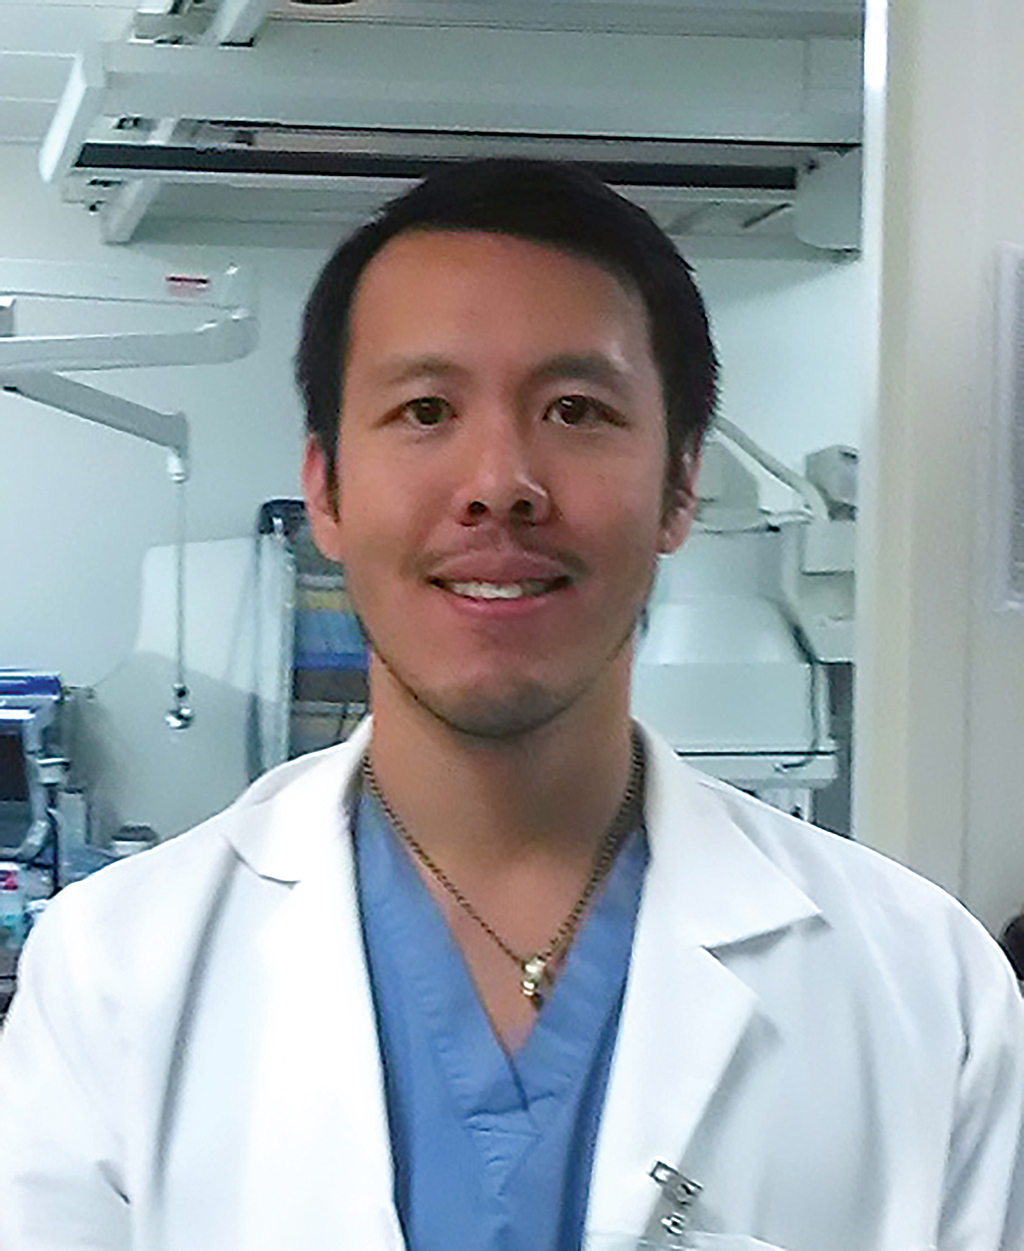 Image of Dr. Chiong. MD explaining pelvic congestion syndrome